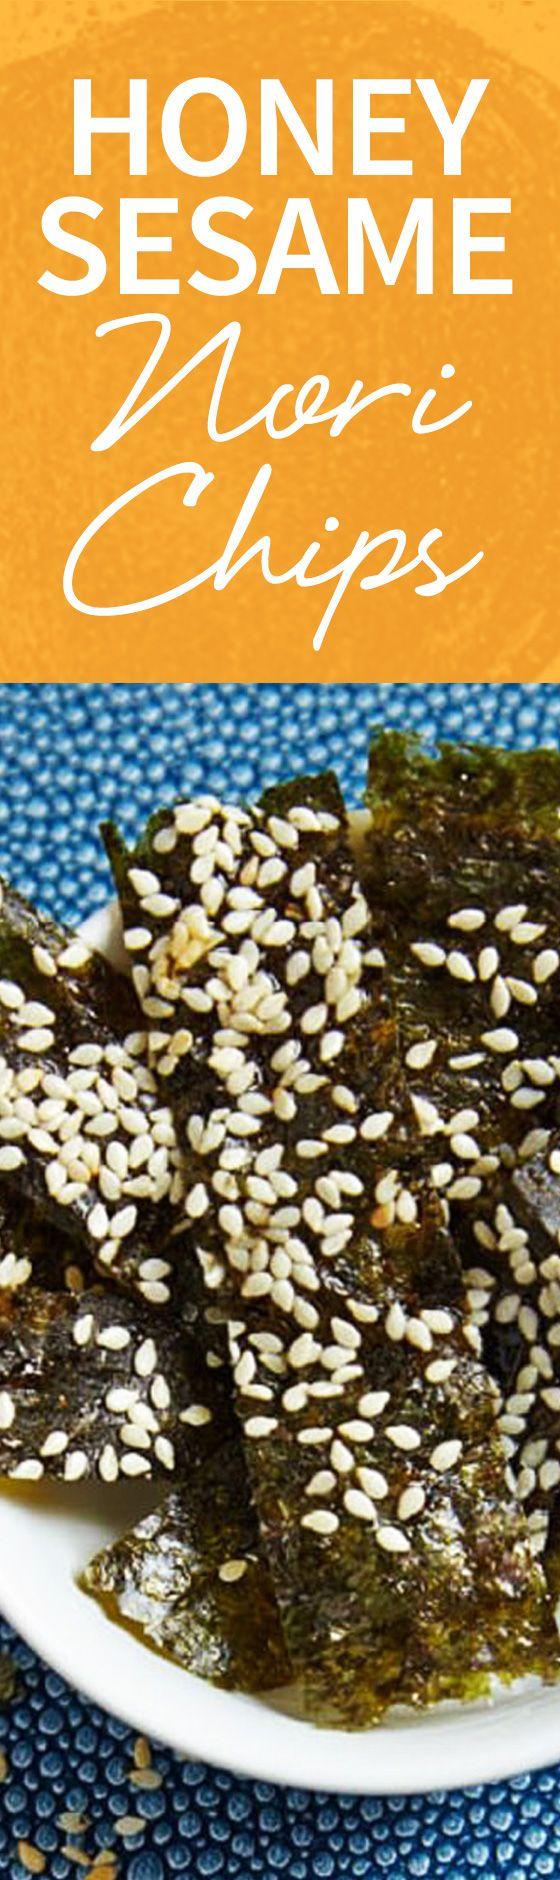 Check out these amazing seaweed chips--a snack that you can make, easy and quick! http://www.joyofkosher.com/recipes/honey-sesame-nori-chips/